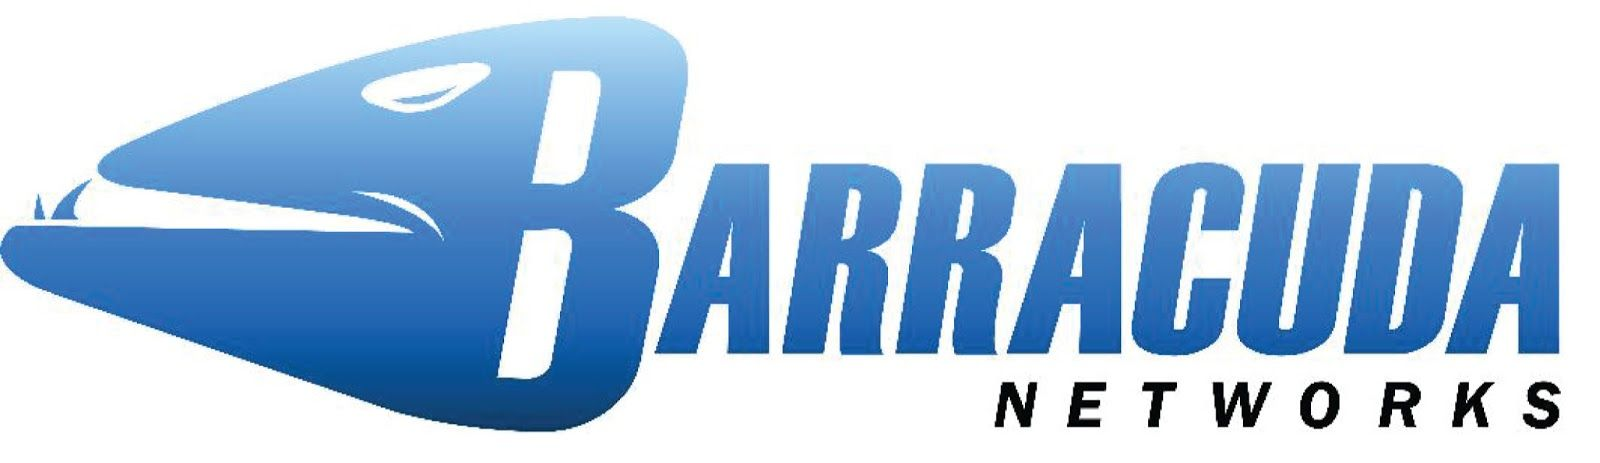 Password disclosure vulnerability in Barracuda Networks | Server Misconfiguration